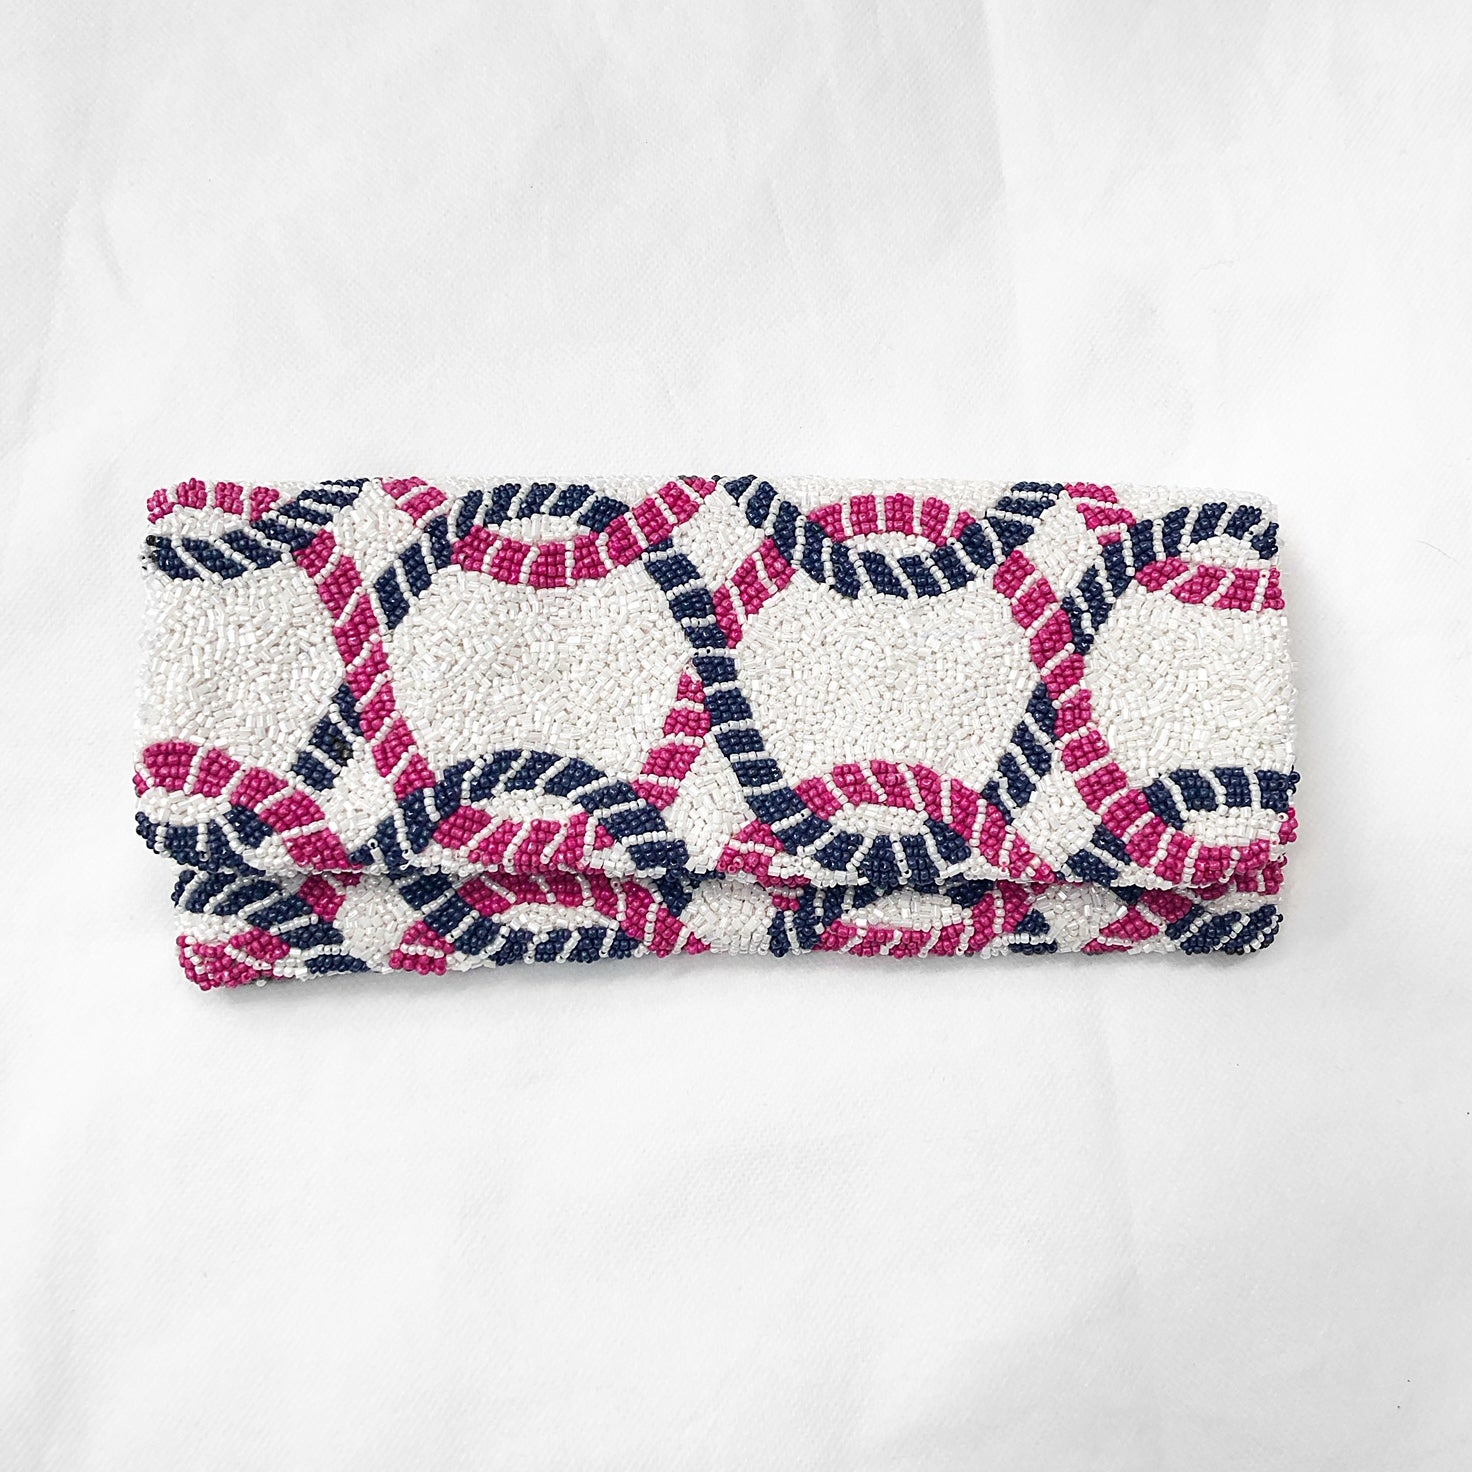 Beaded Fold Over Clutch White/Navy/Fuchsia